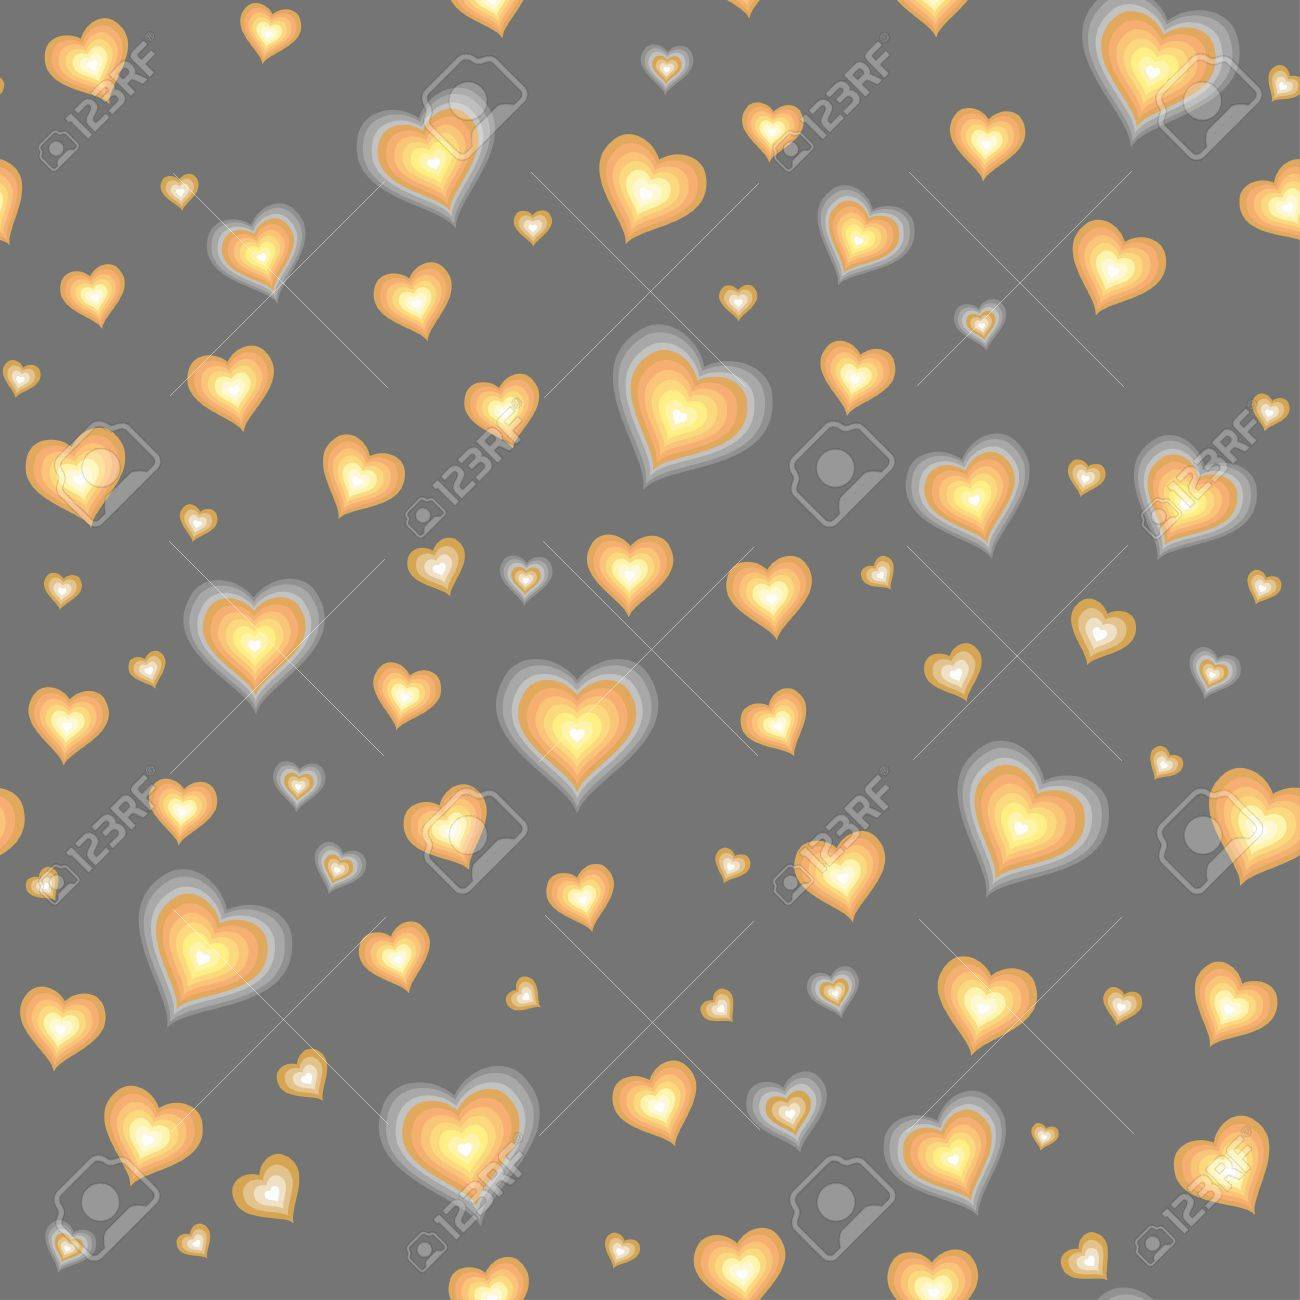 Cartoon hearts against grey background  Seamless pattern Stock Vector - 18139711